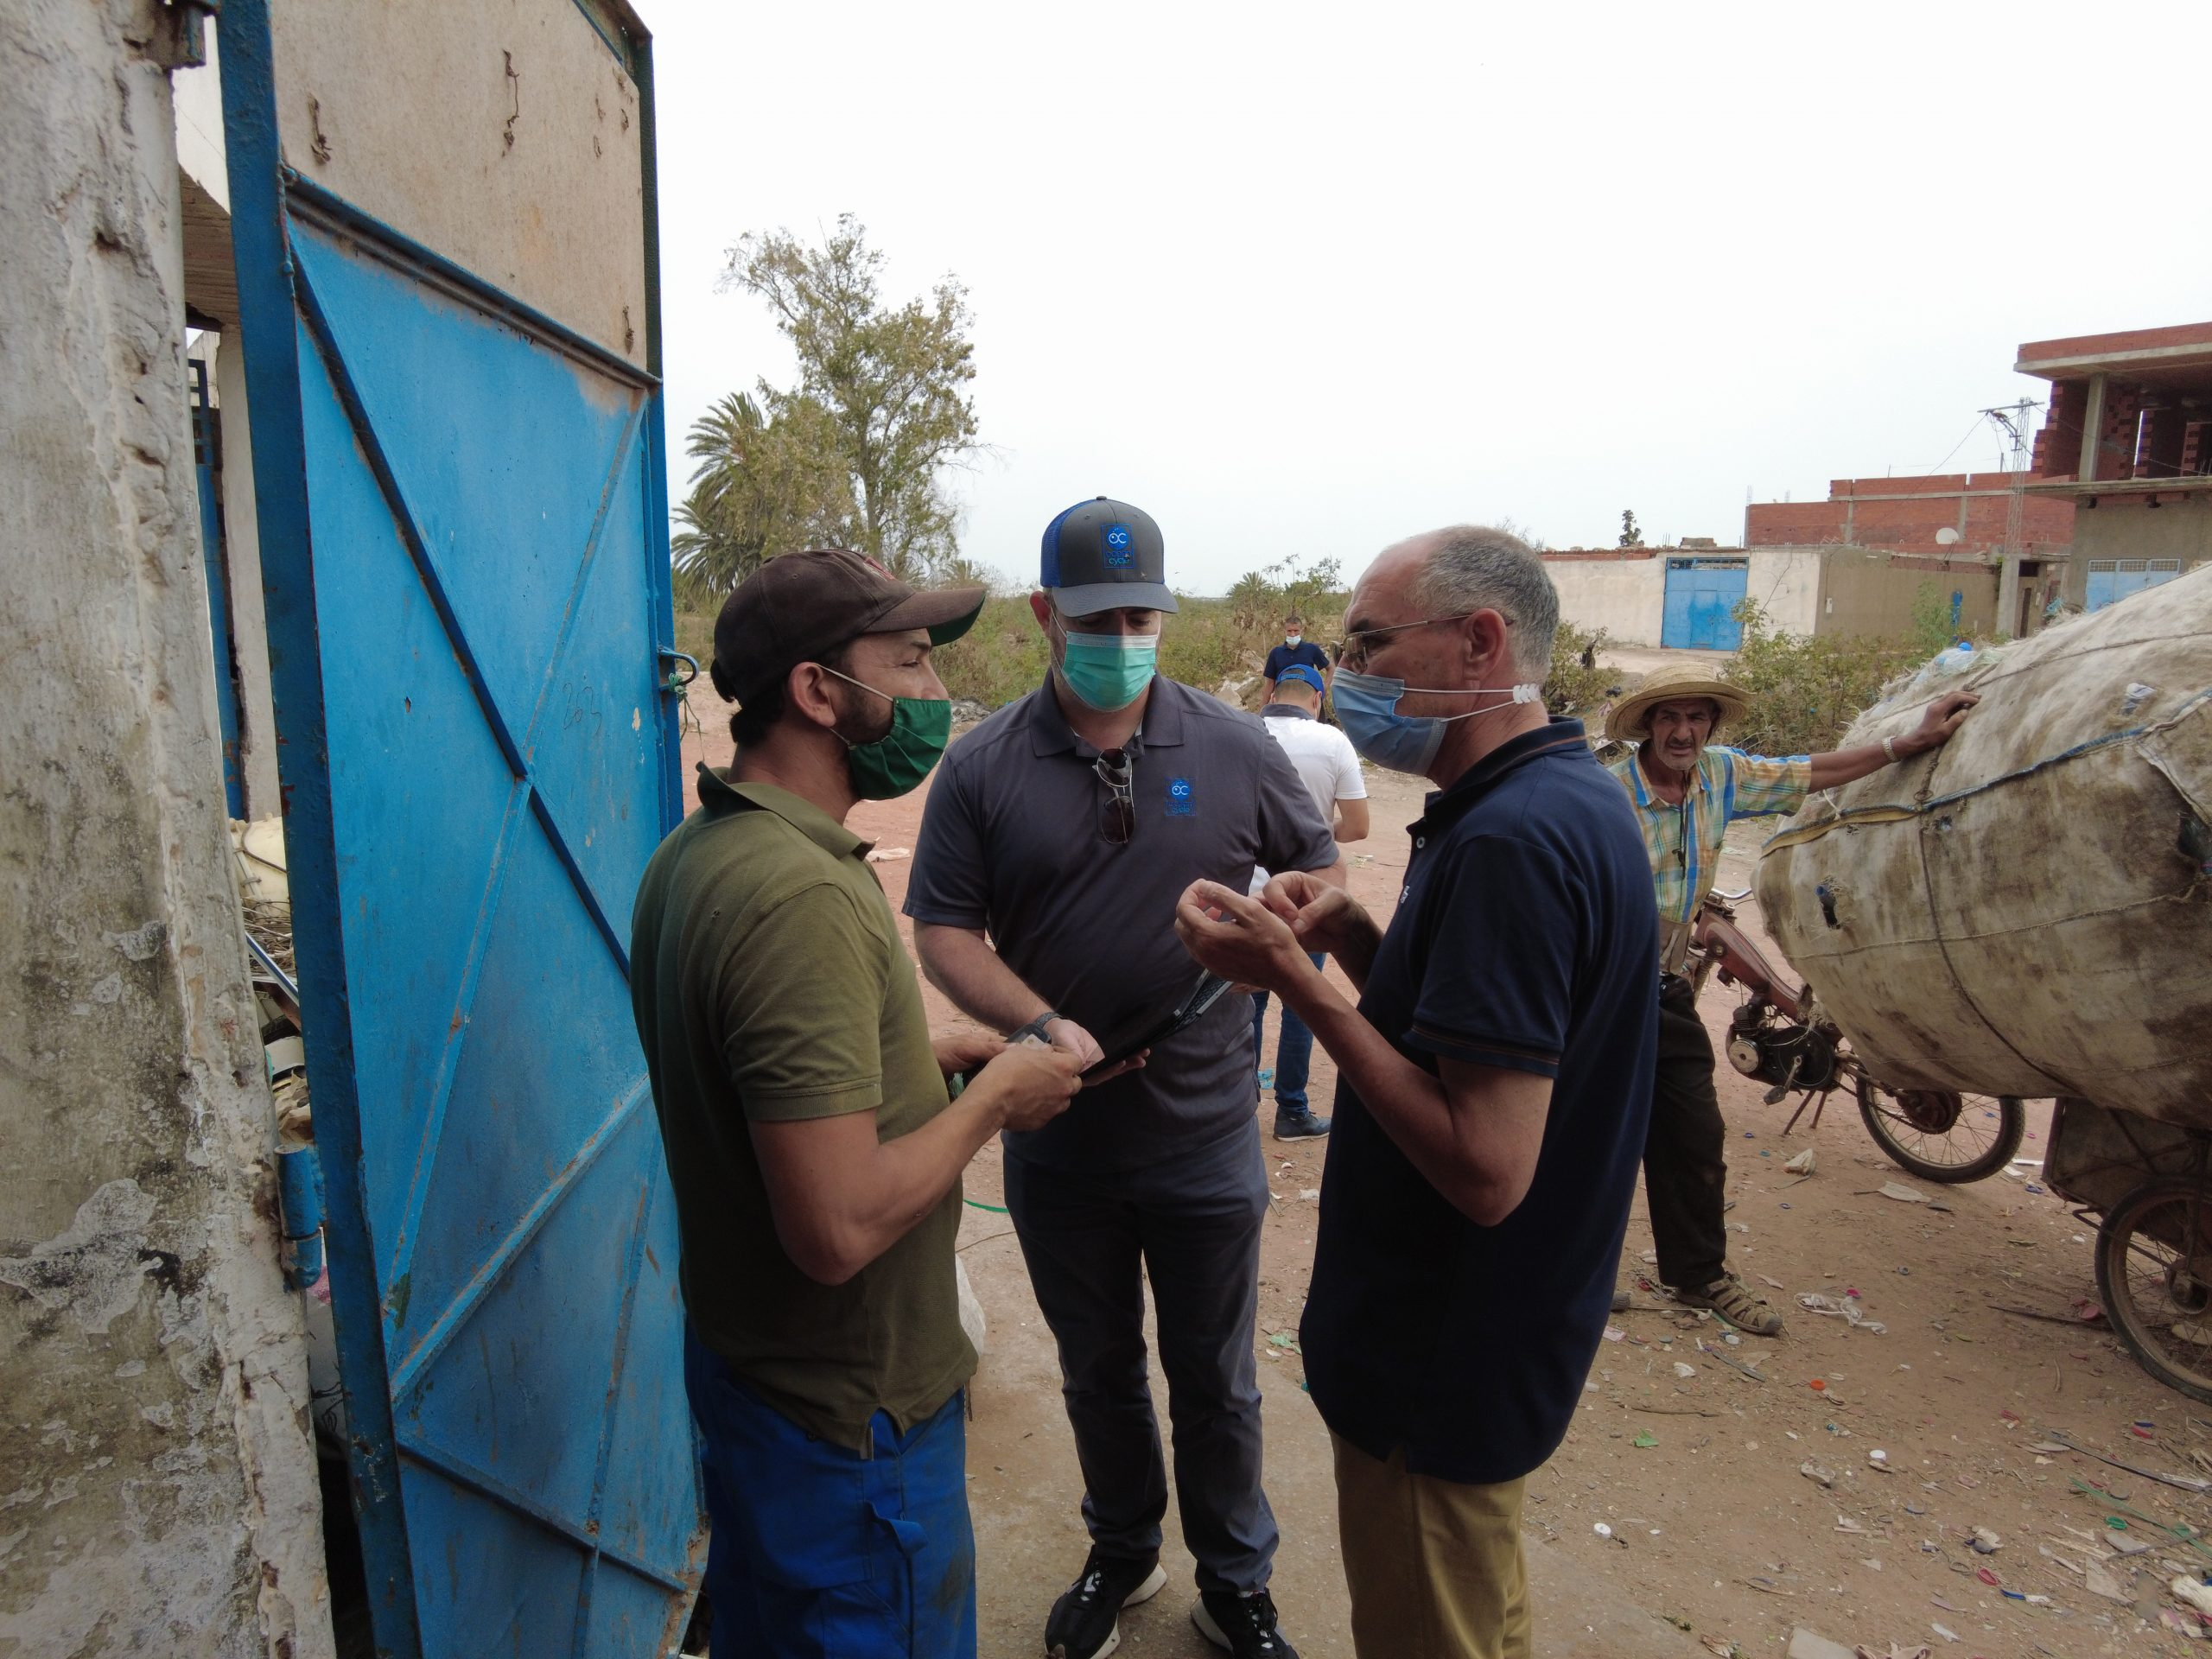 Jemmal, Tunisia: Our team speaks with the owners of the collection center